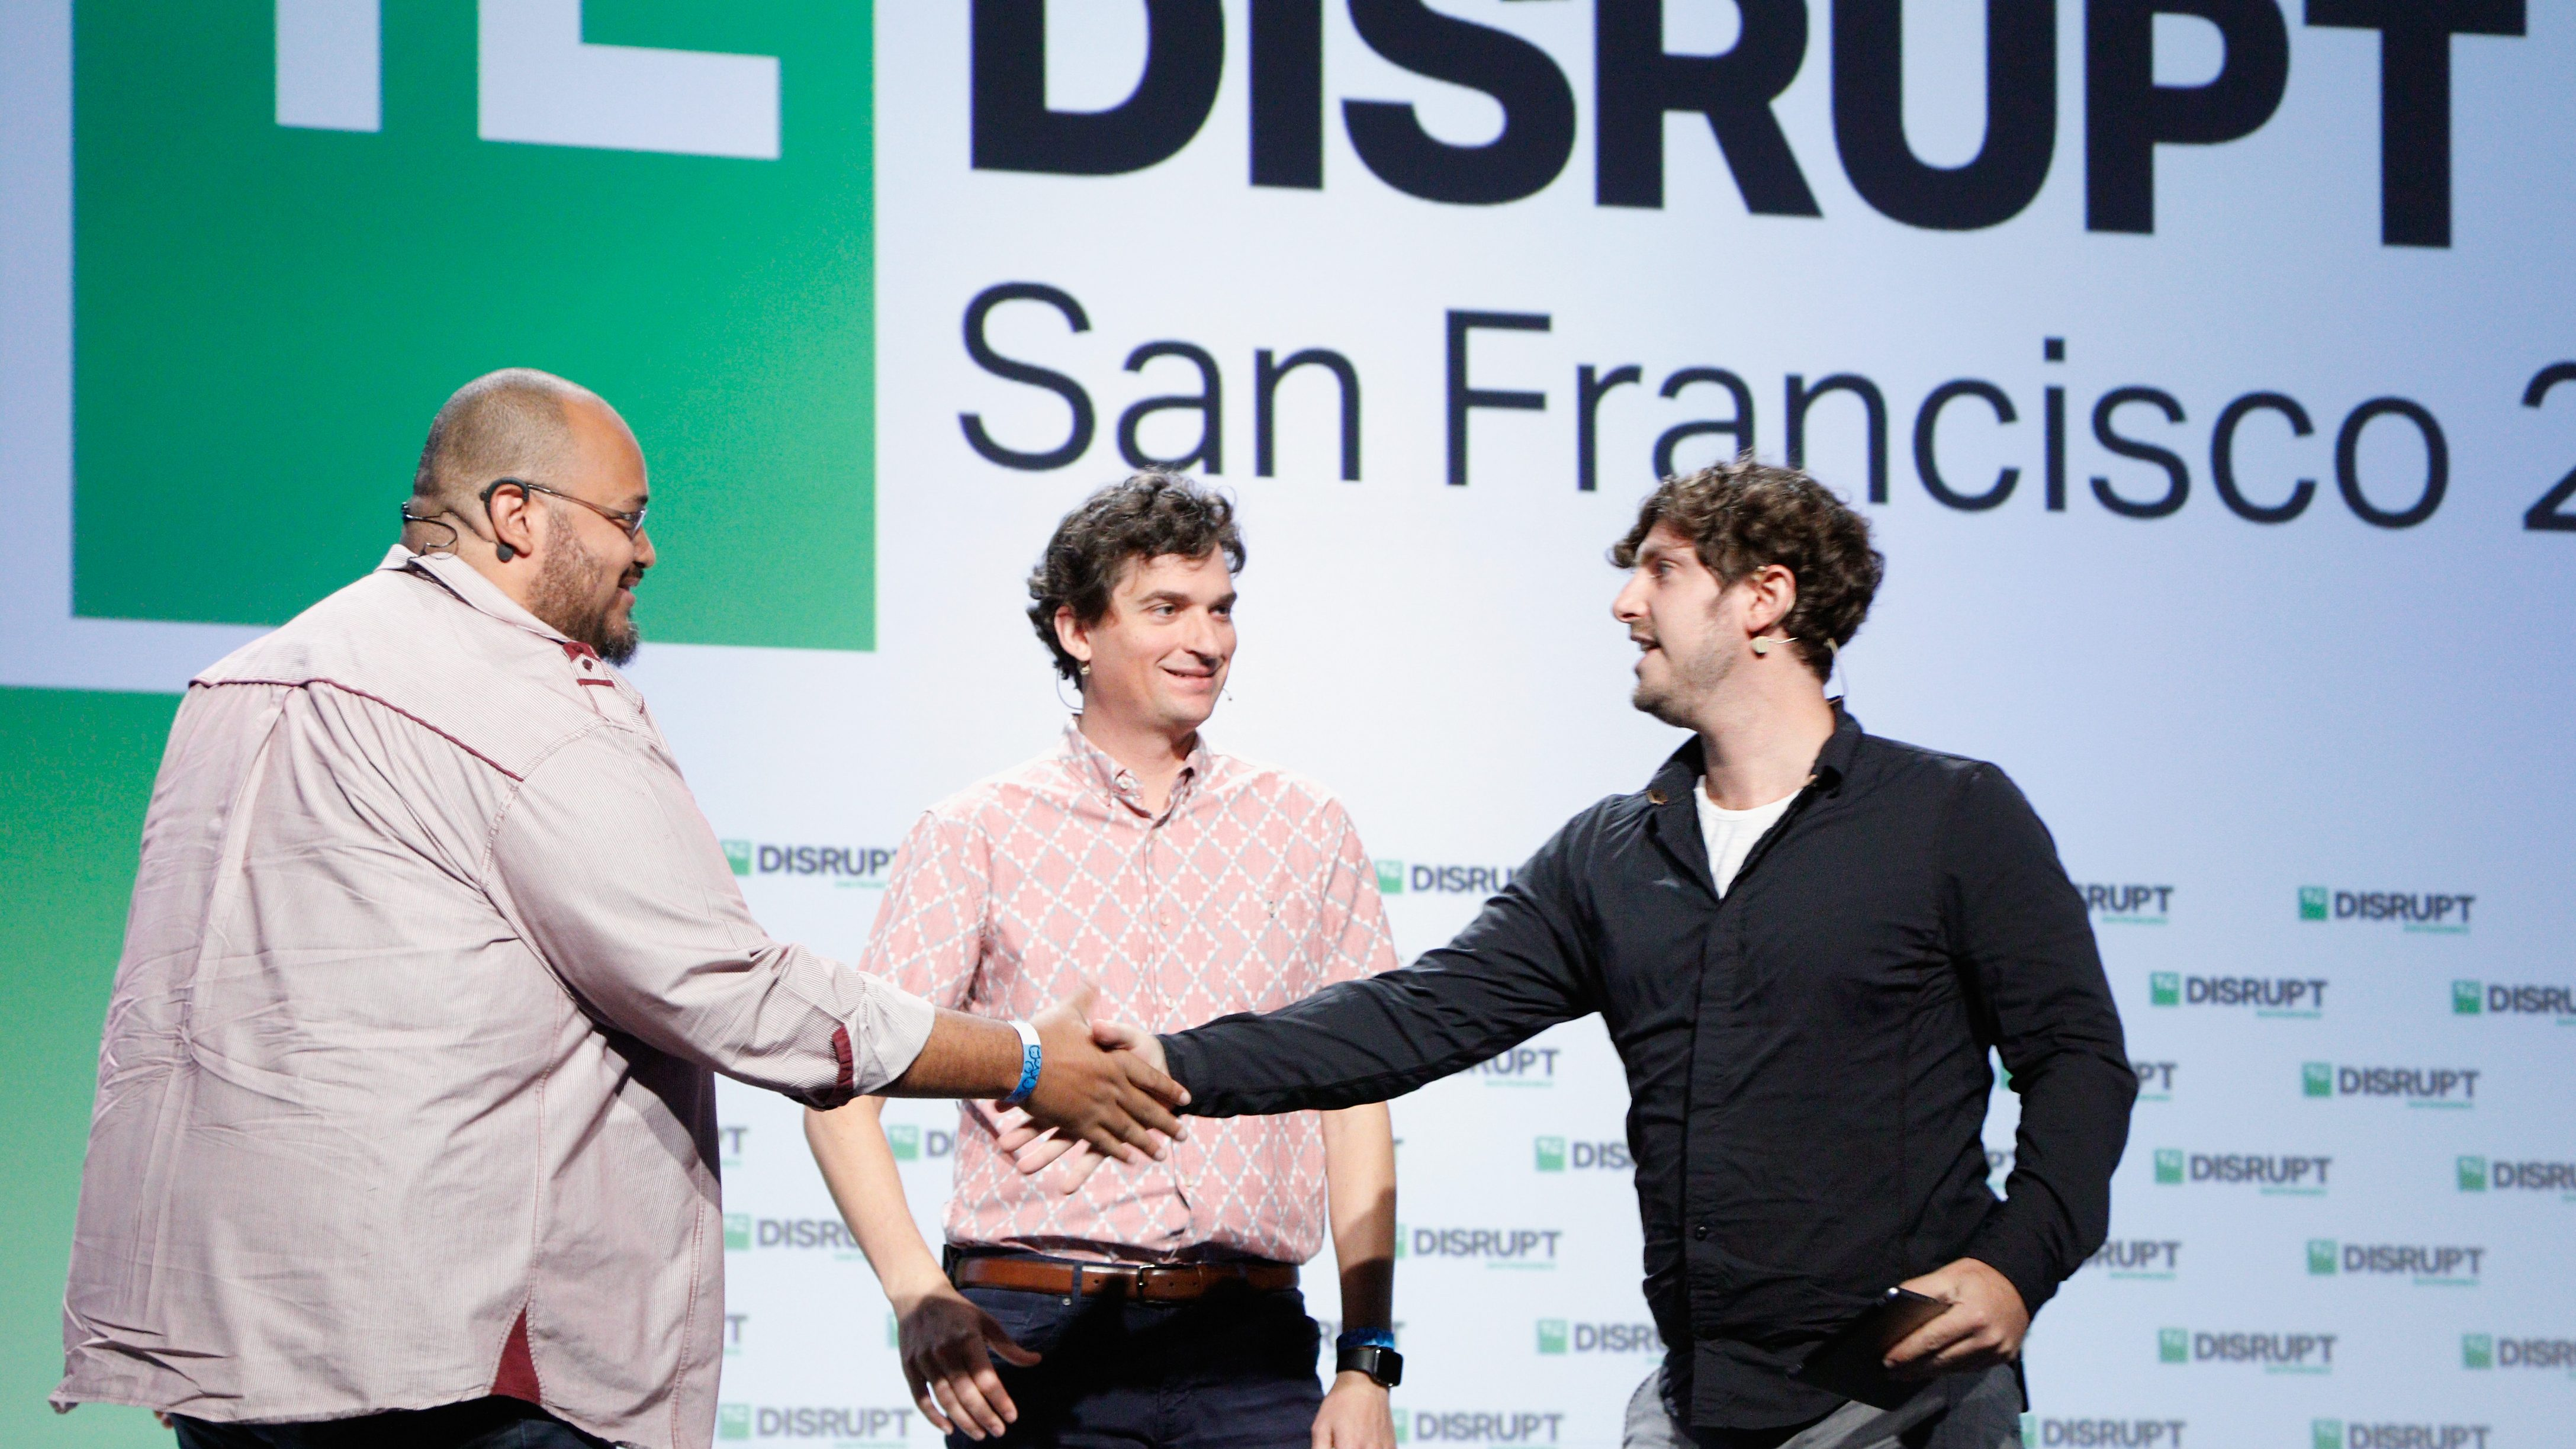 Y Combinator Partners Michael Seibel and Dalton Caldwell, and moderator Josh Constine speak at TechCrunch Disrupt SF 2018.